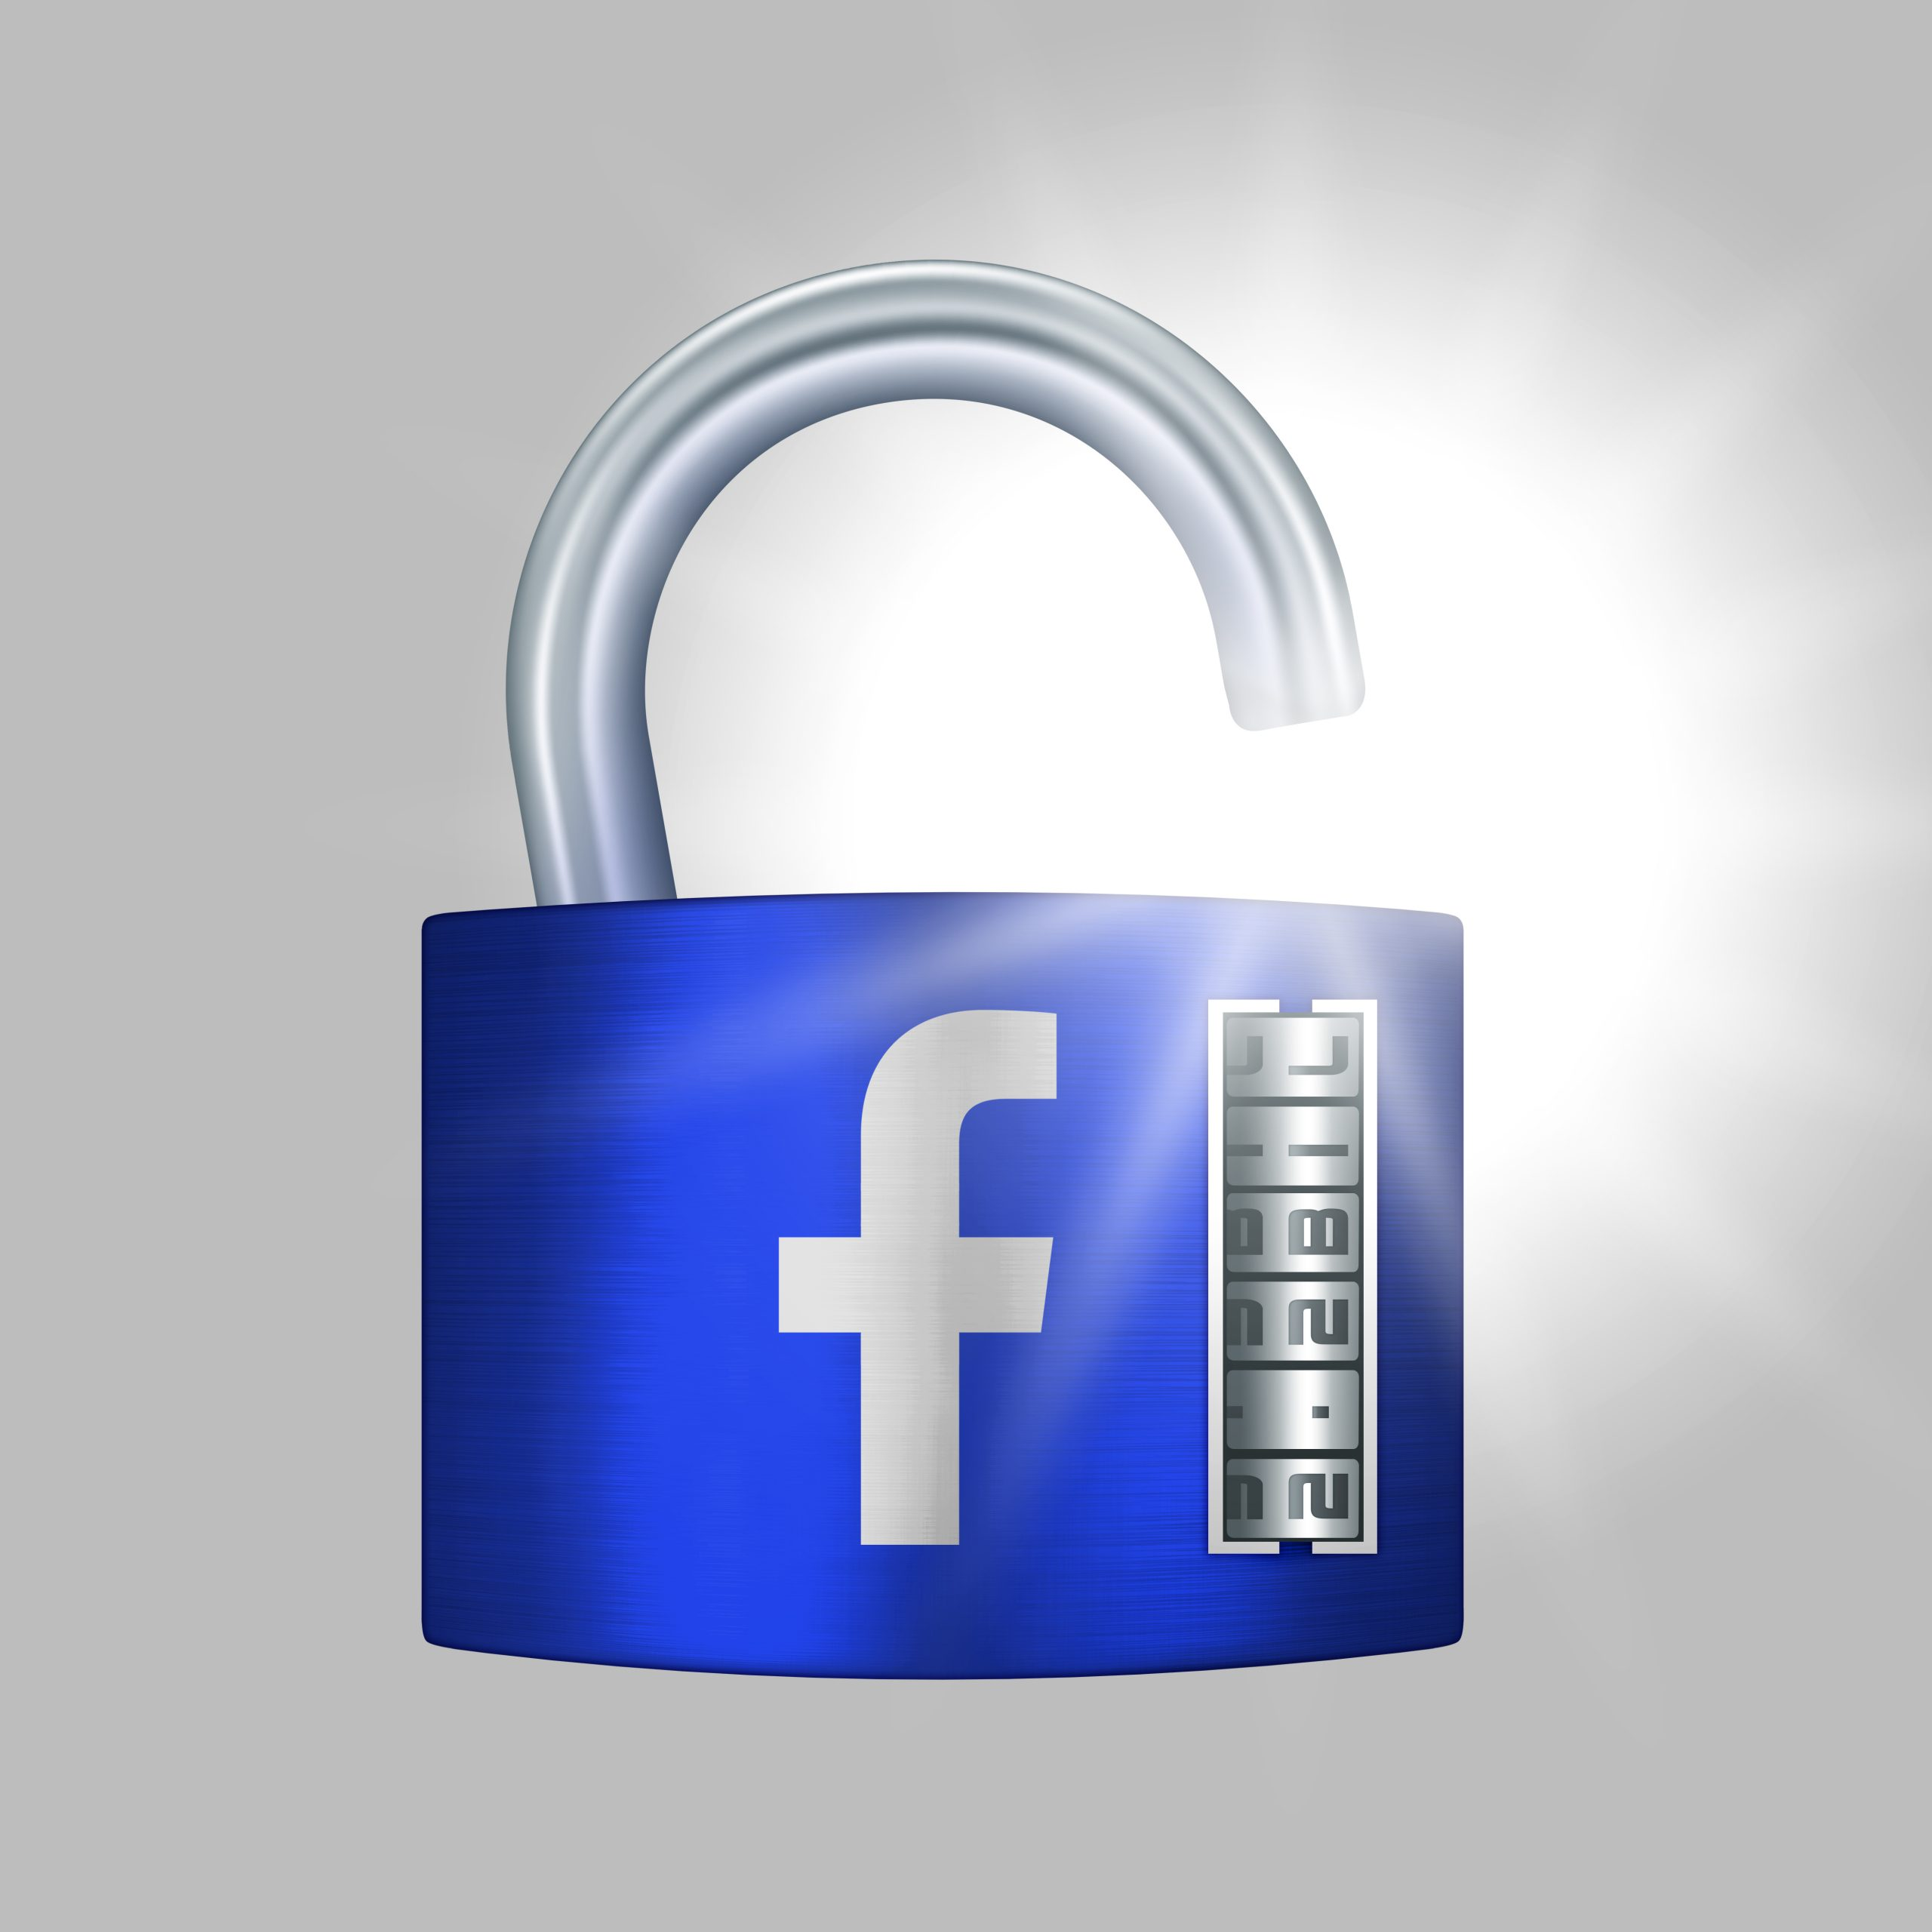 Are You One Of The 533 Million Facebook Users Who Had Their Data Stolen? via @sejournal, @RebekahDunne